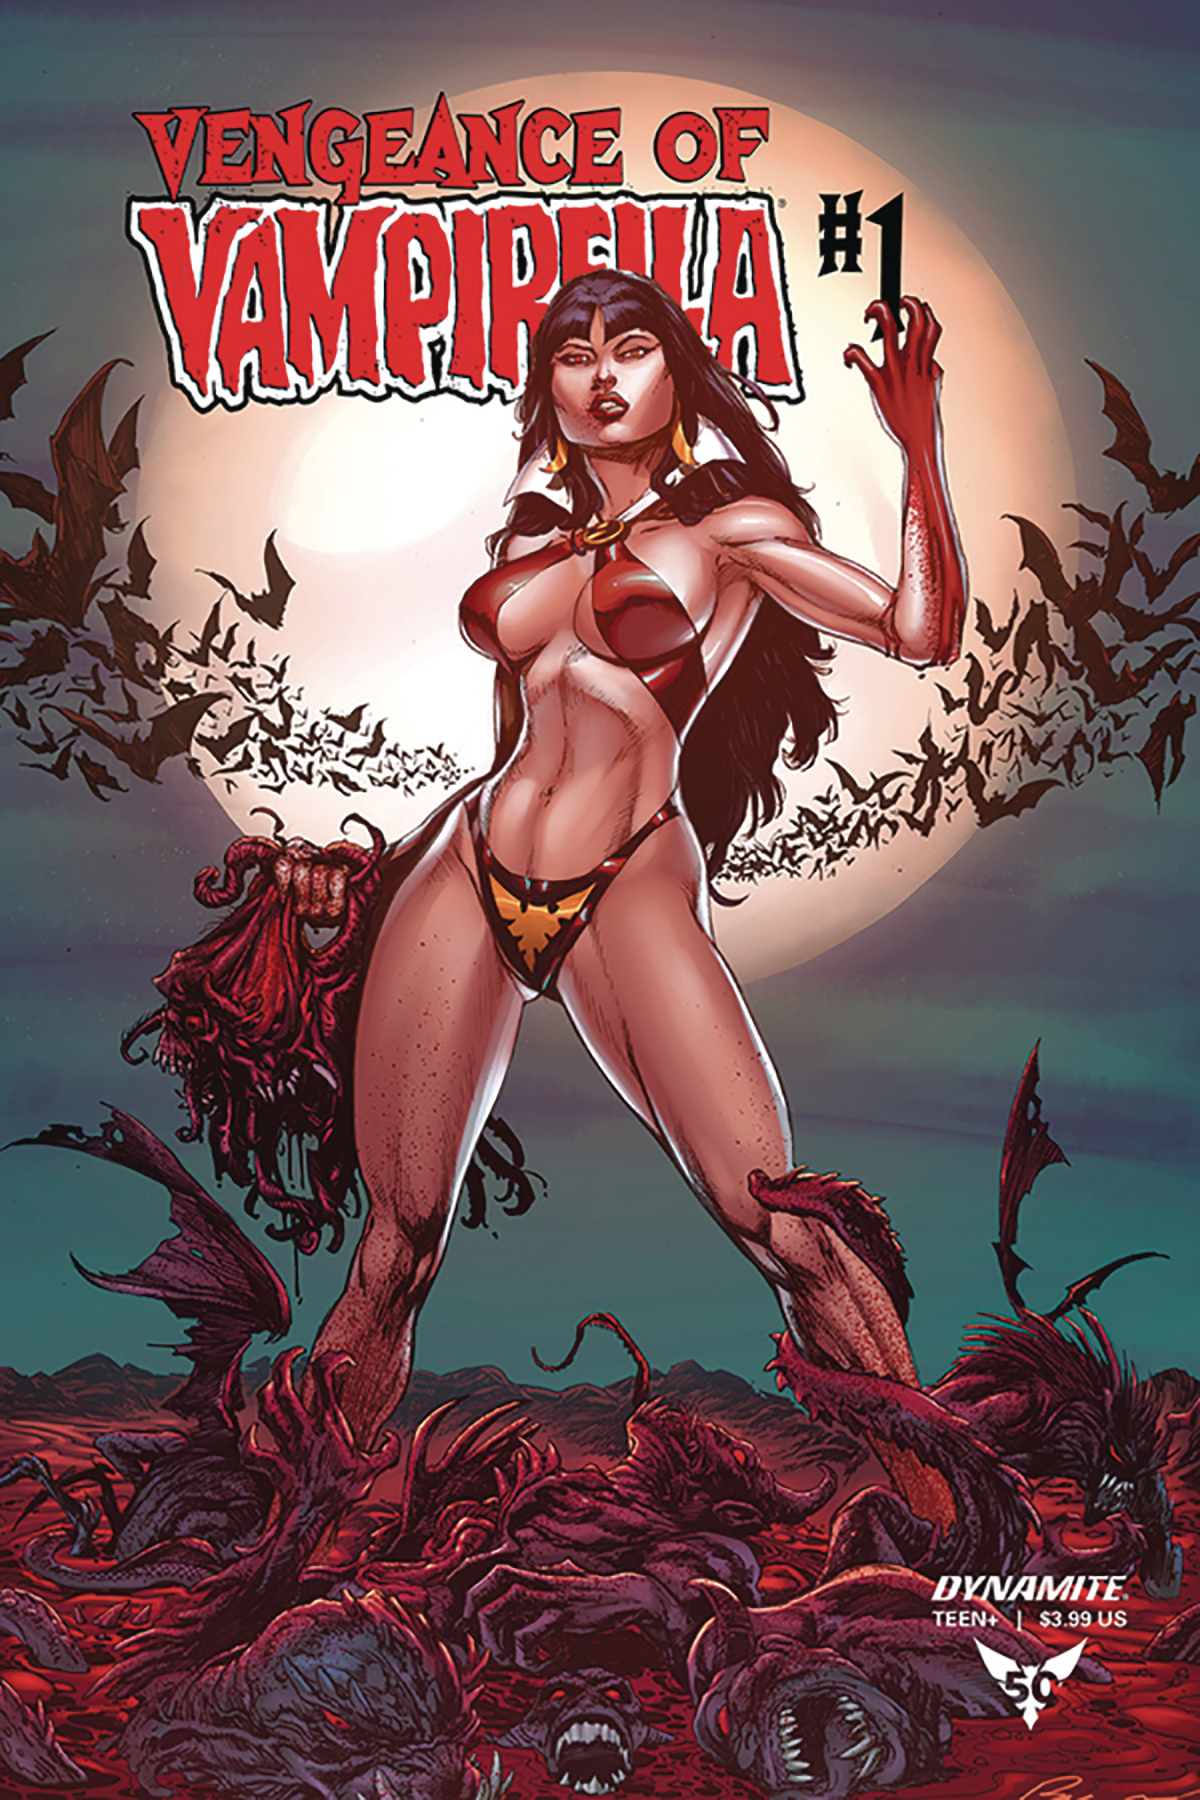 VENGEANCE OF VAMPIRELLA #1 10 COPY BUZZ INCV